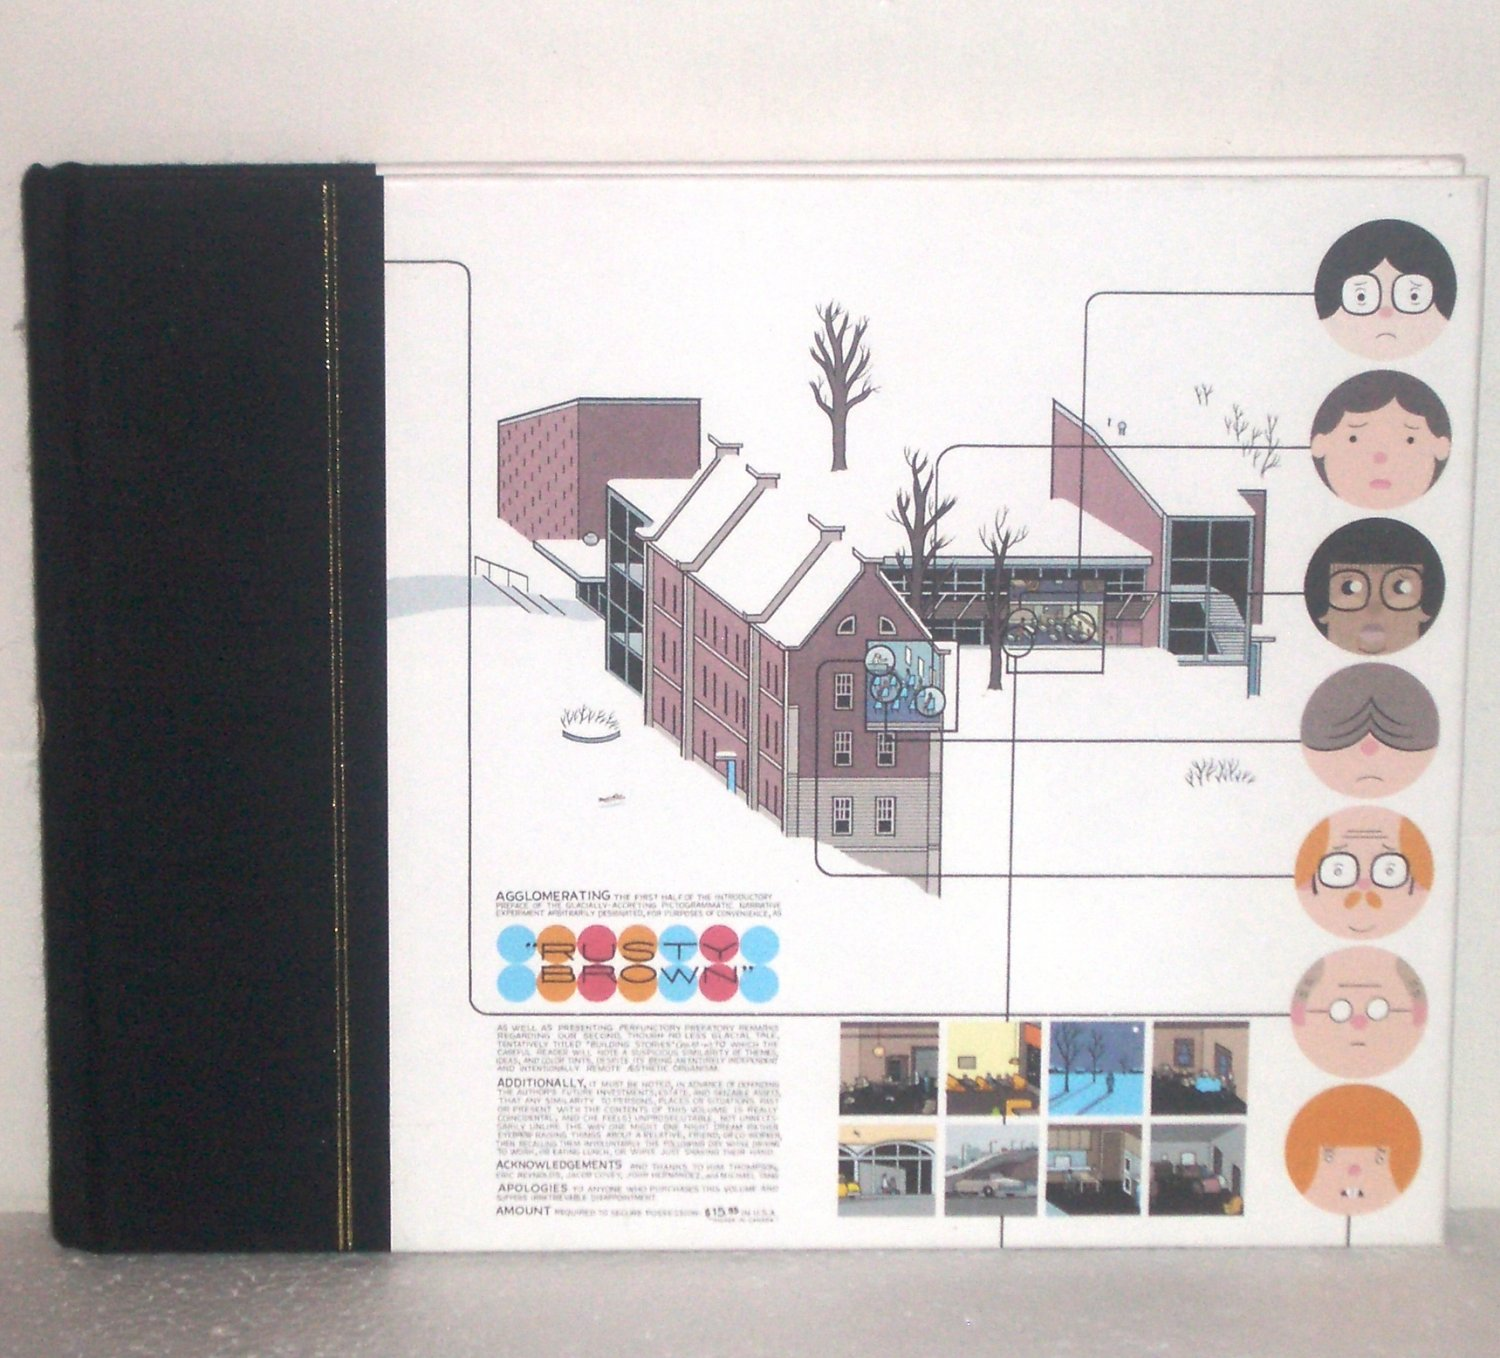 The ACME Novelty Library #16 by CHRIS WARE 2005 Hardcover Graphic Novel